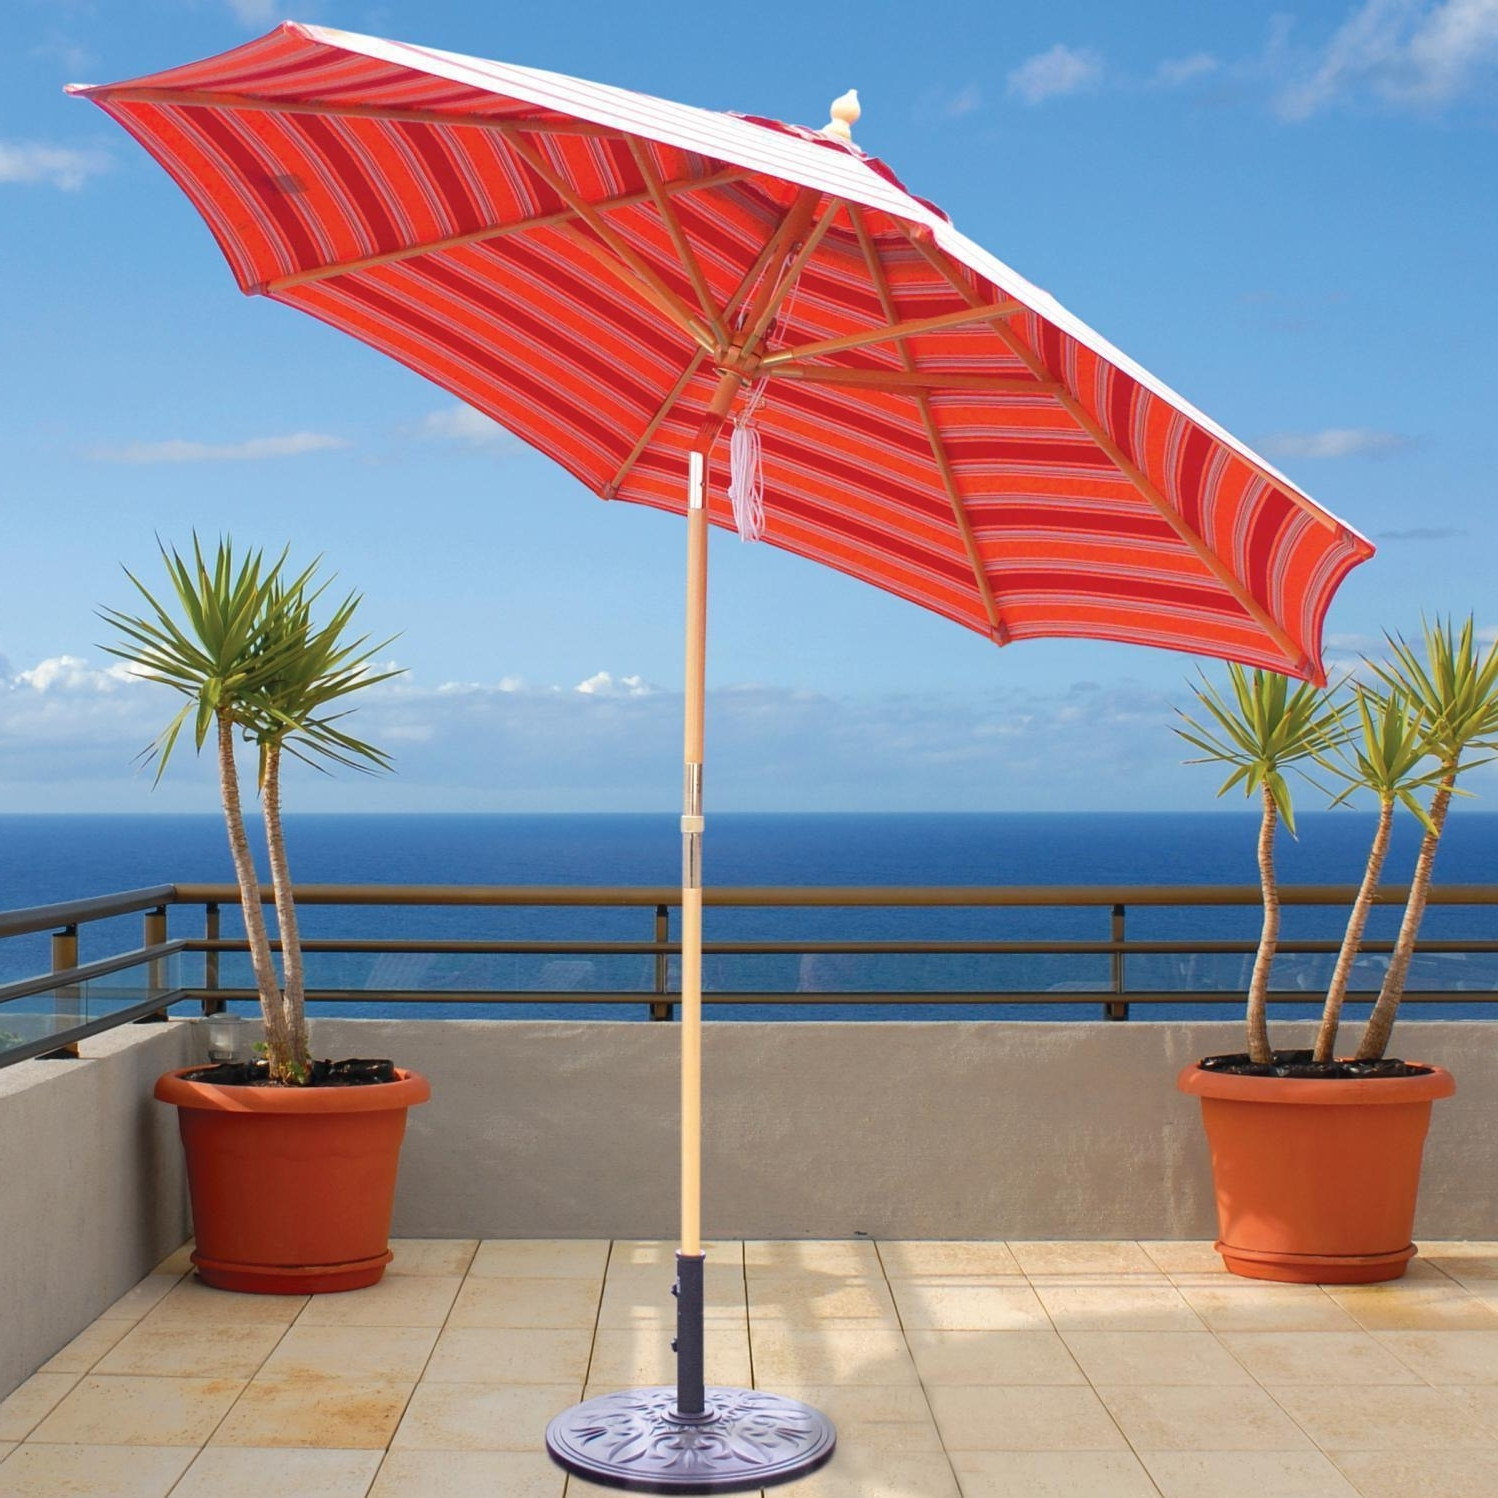 Galtech 9 Ft Wood Patio Umbrella With Crank Lift And Rotational Tilt In Fashionable Wooden Patio Umbrellas (Gallery 4 of 20)